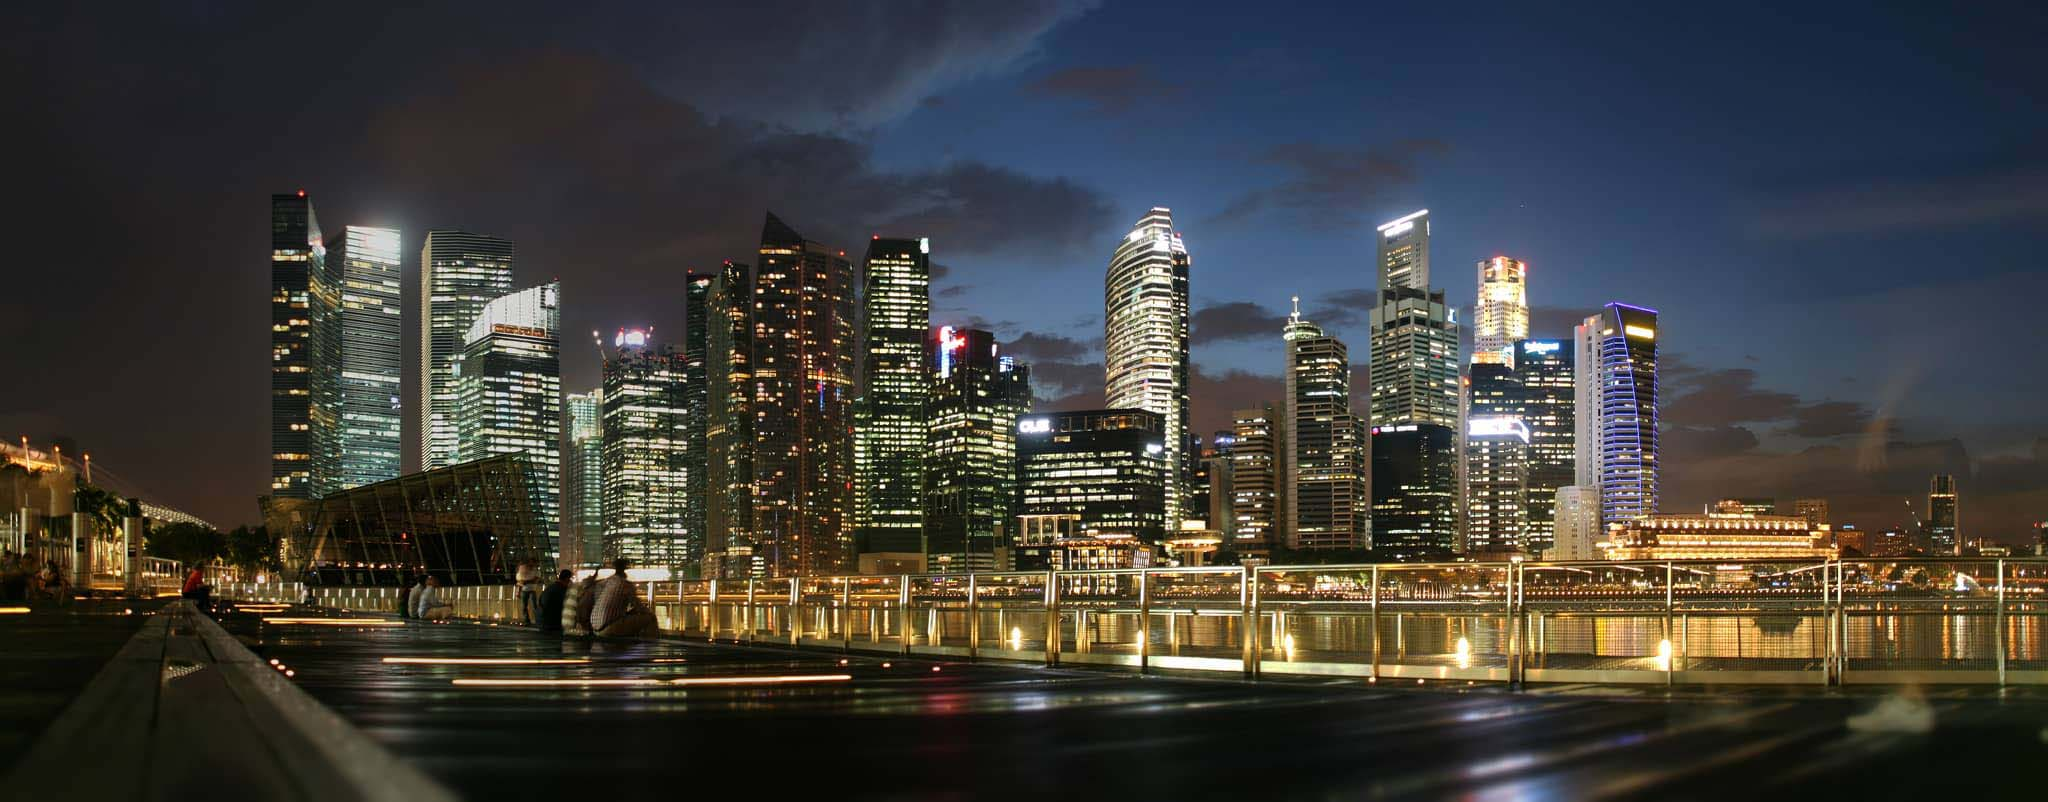 View of Singapore at night